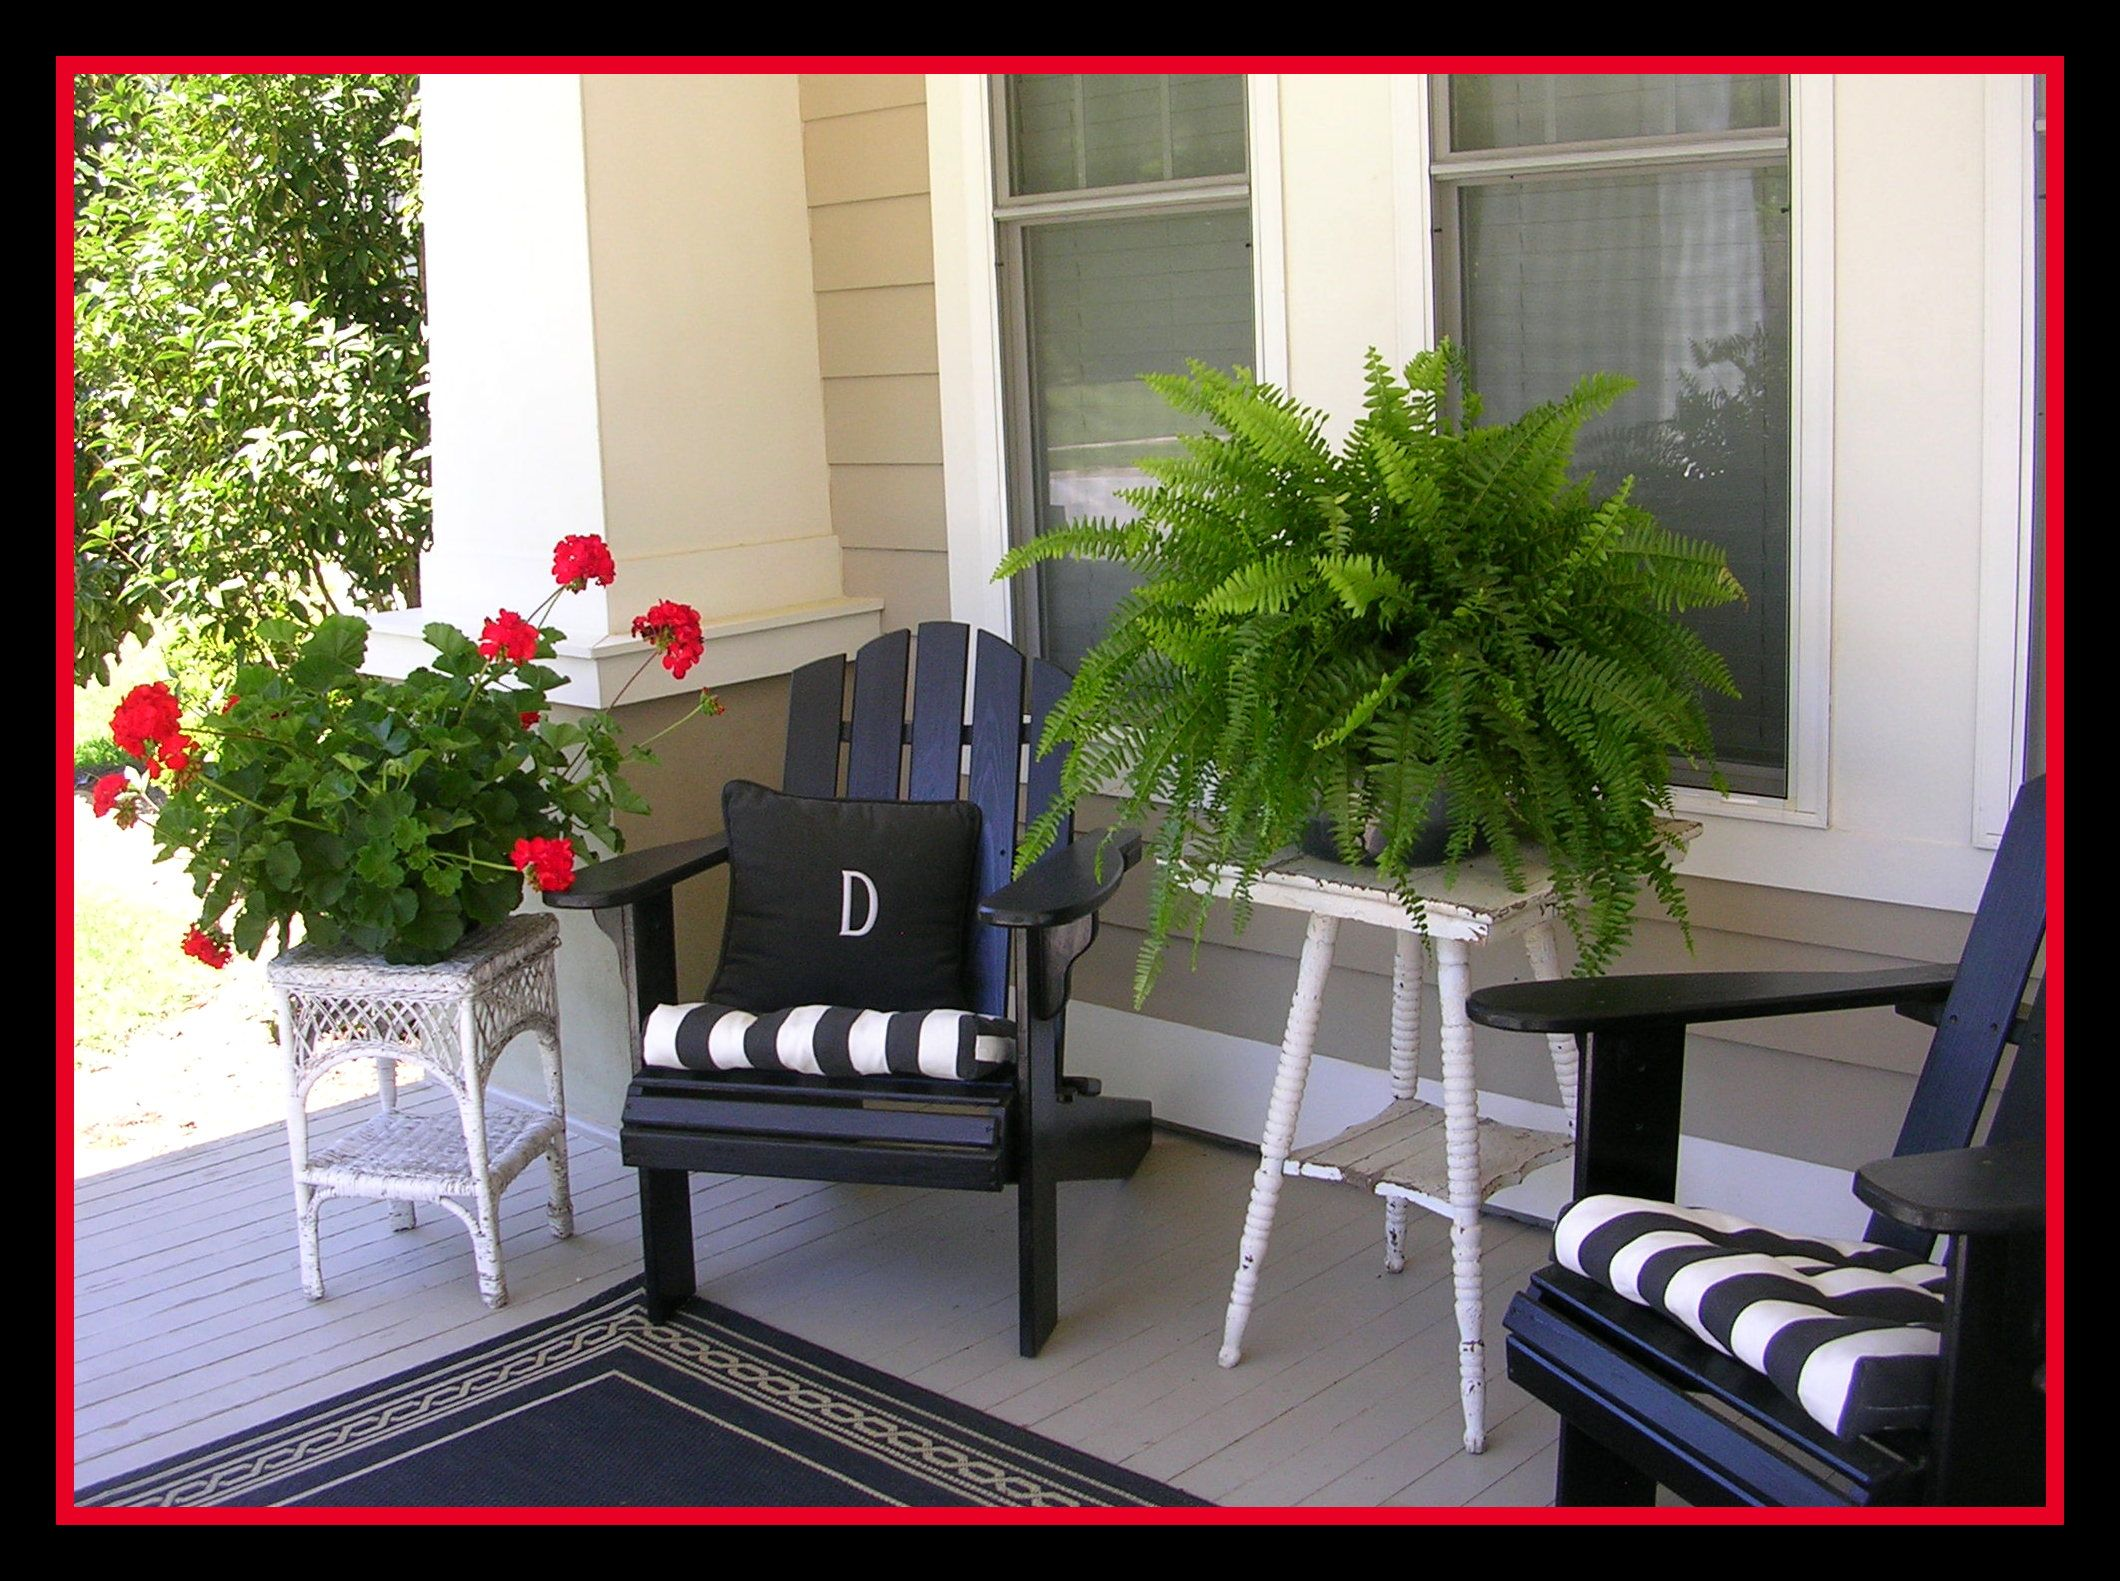 Southern porch complete with red geraniums and ferns...oh, and a big glass of sweet tea. #smallporchdecorating